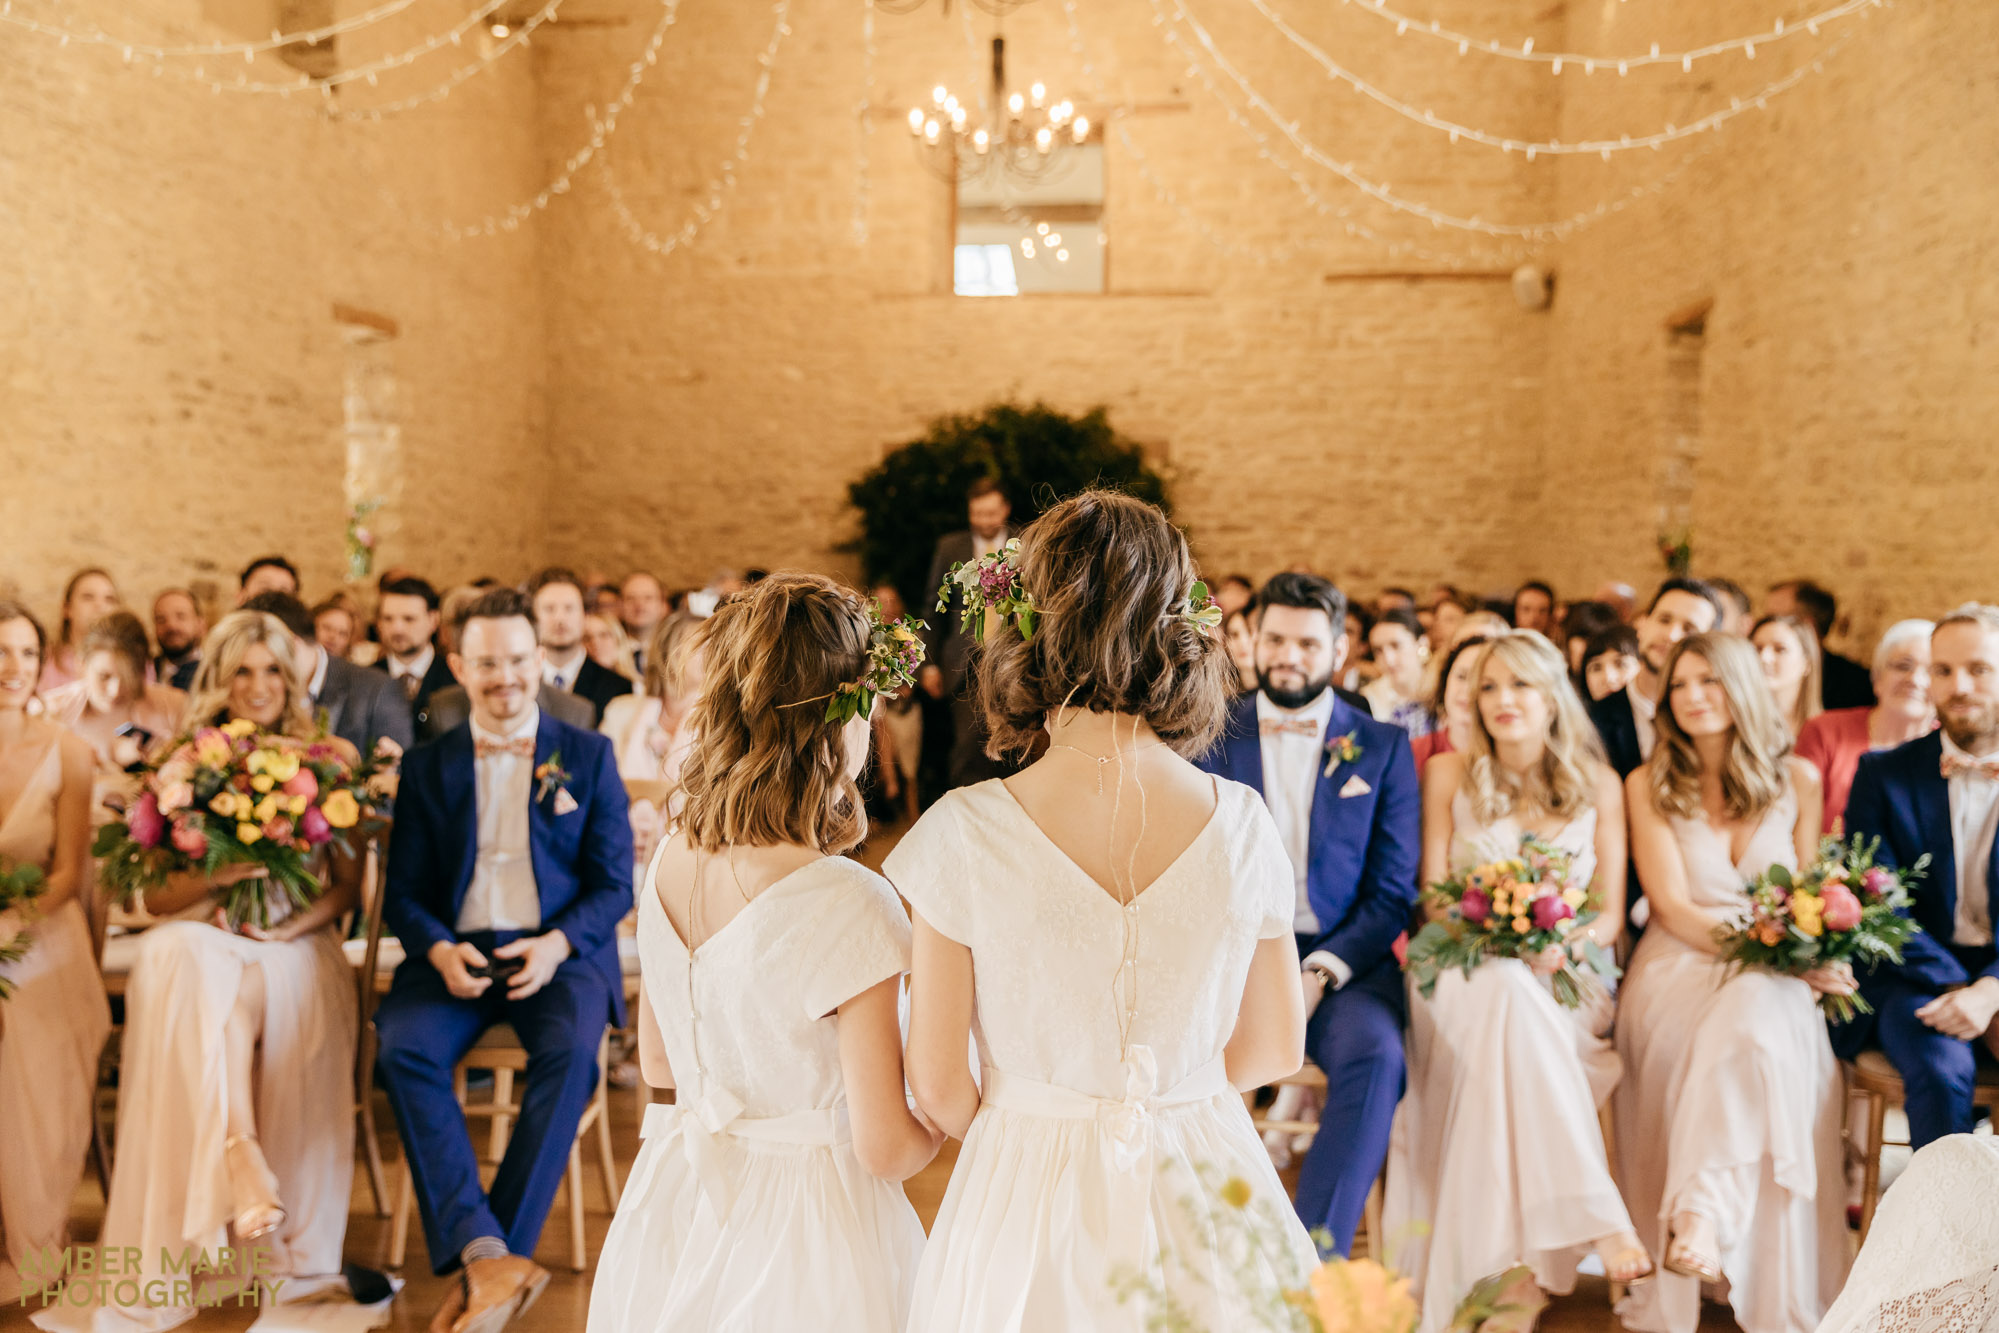 kingscote barn wedding